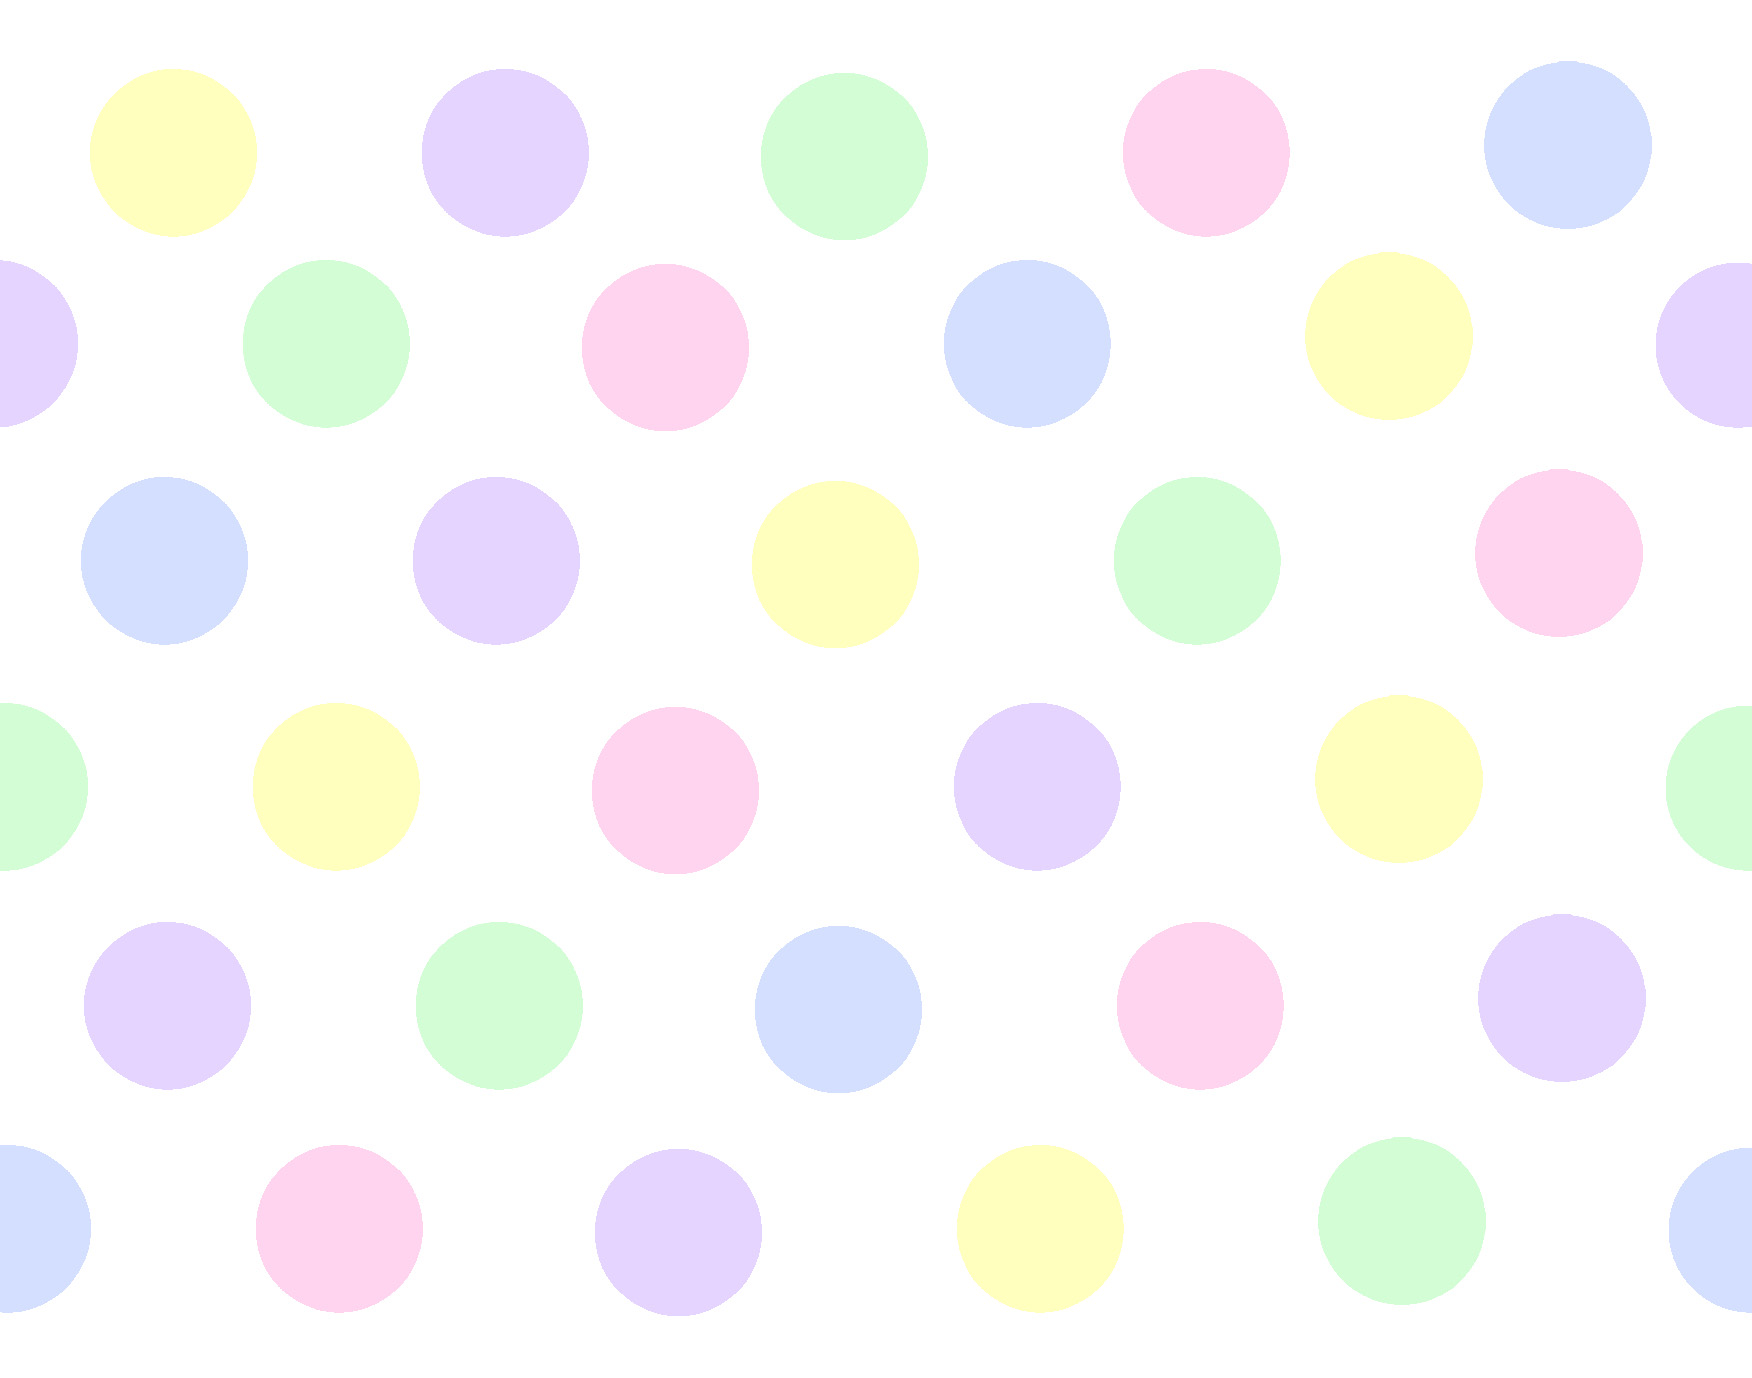 polka dots wallpaper - photo #14